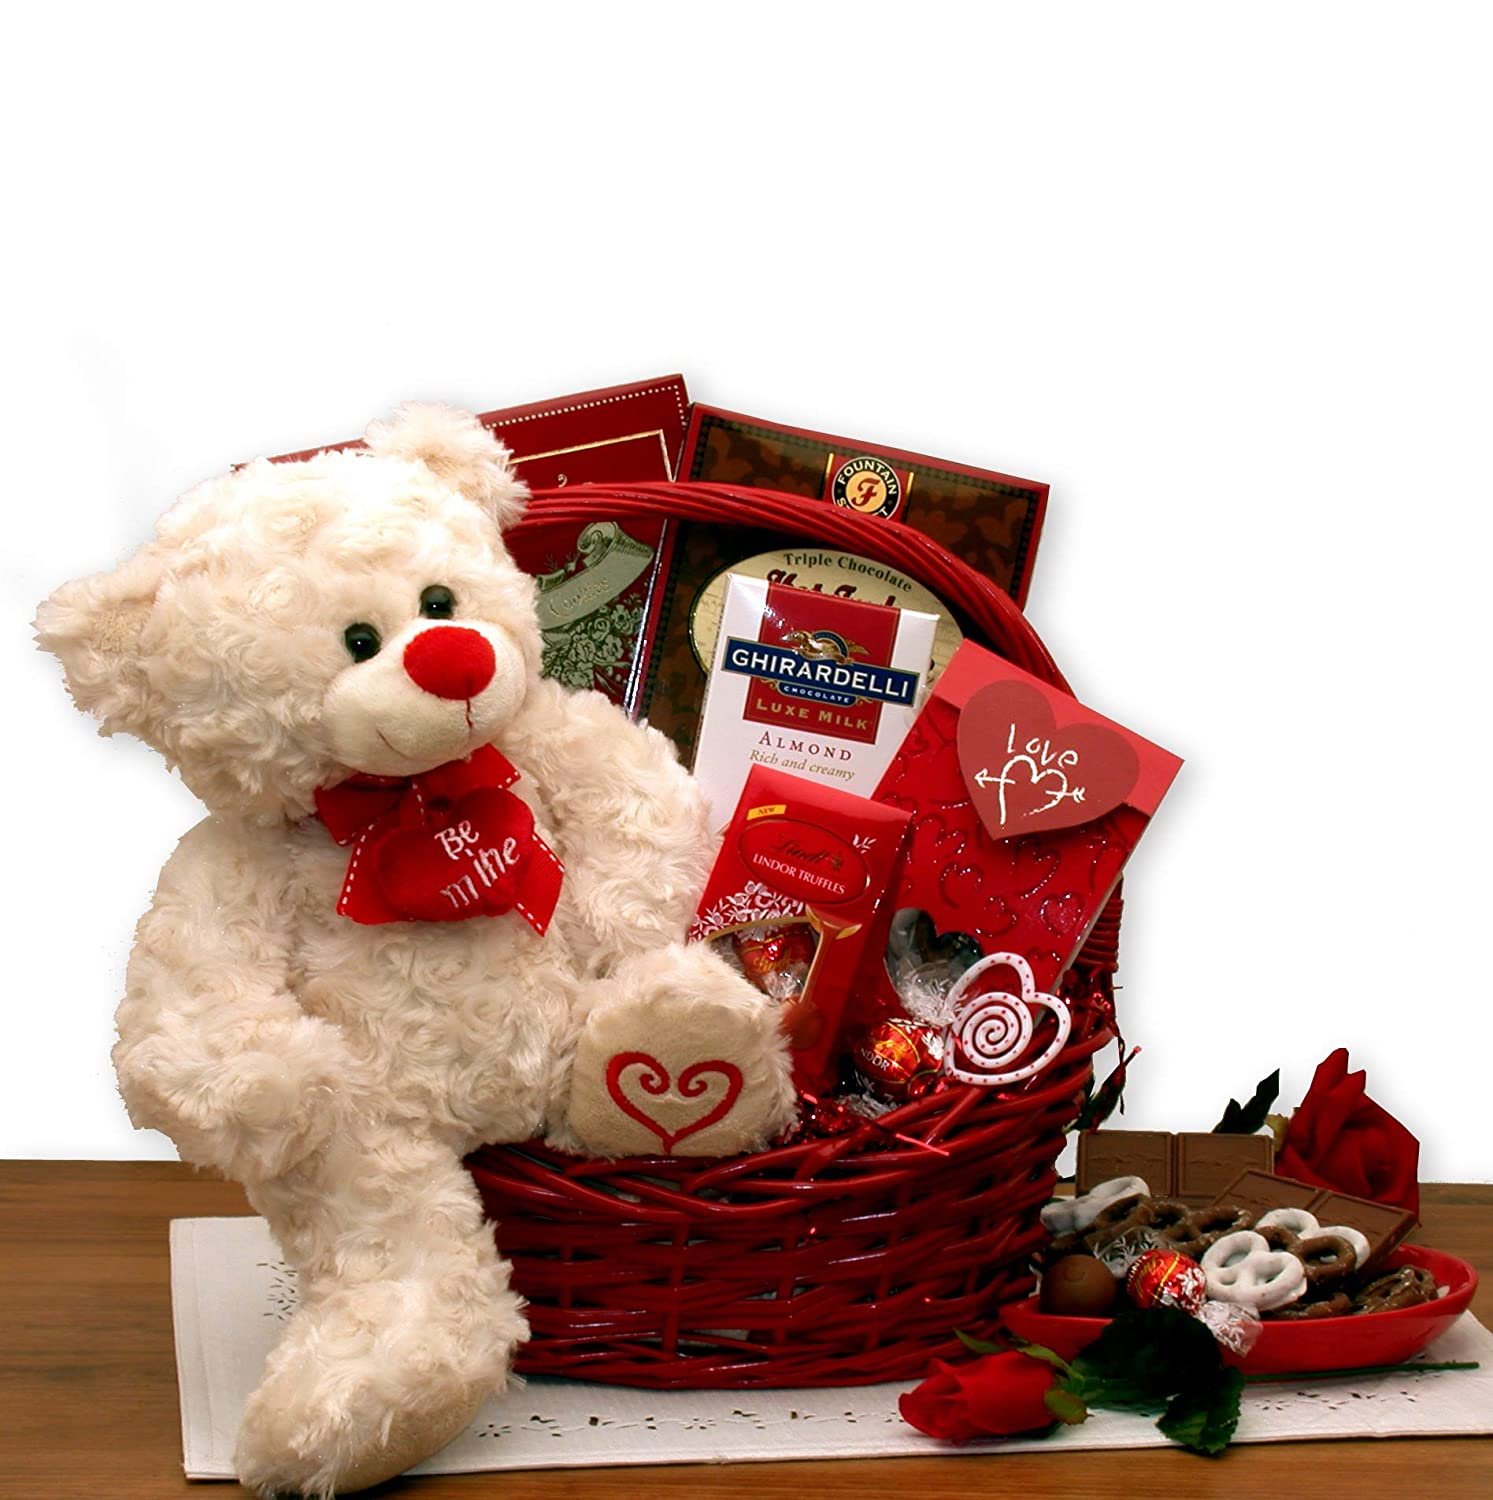 Be My Valentine -Valentine's Day Gift Basket with Teddy Bear: Amazon.com: Grocery & Gourmet Food